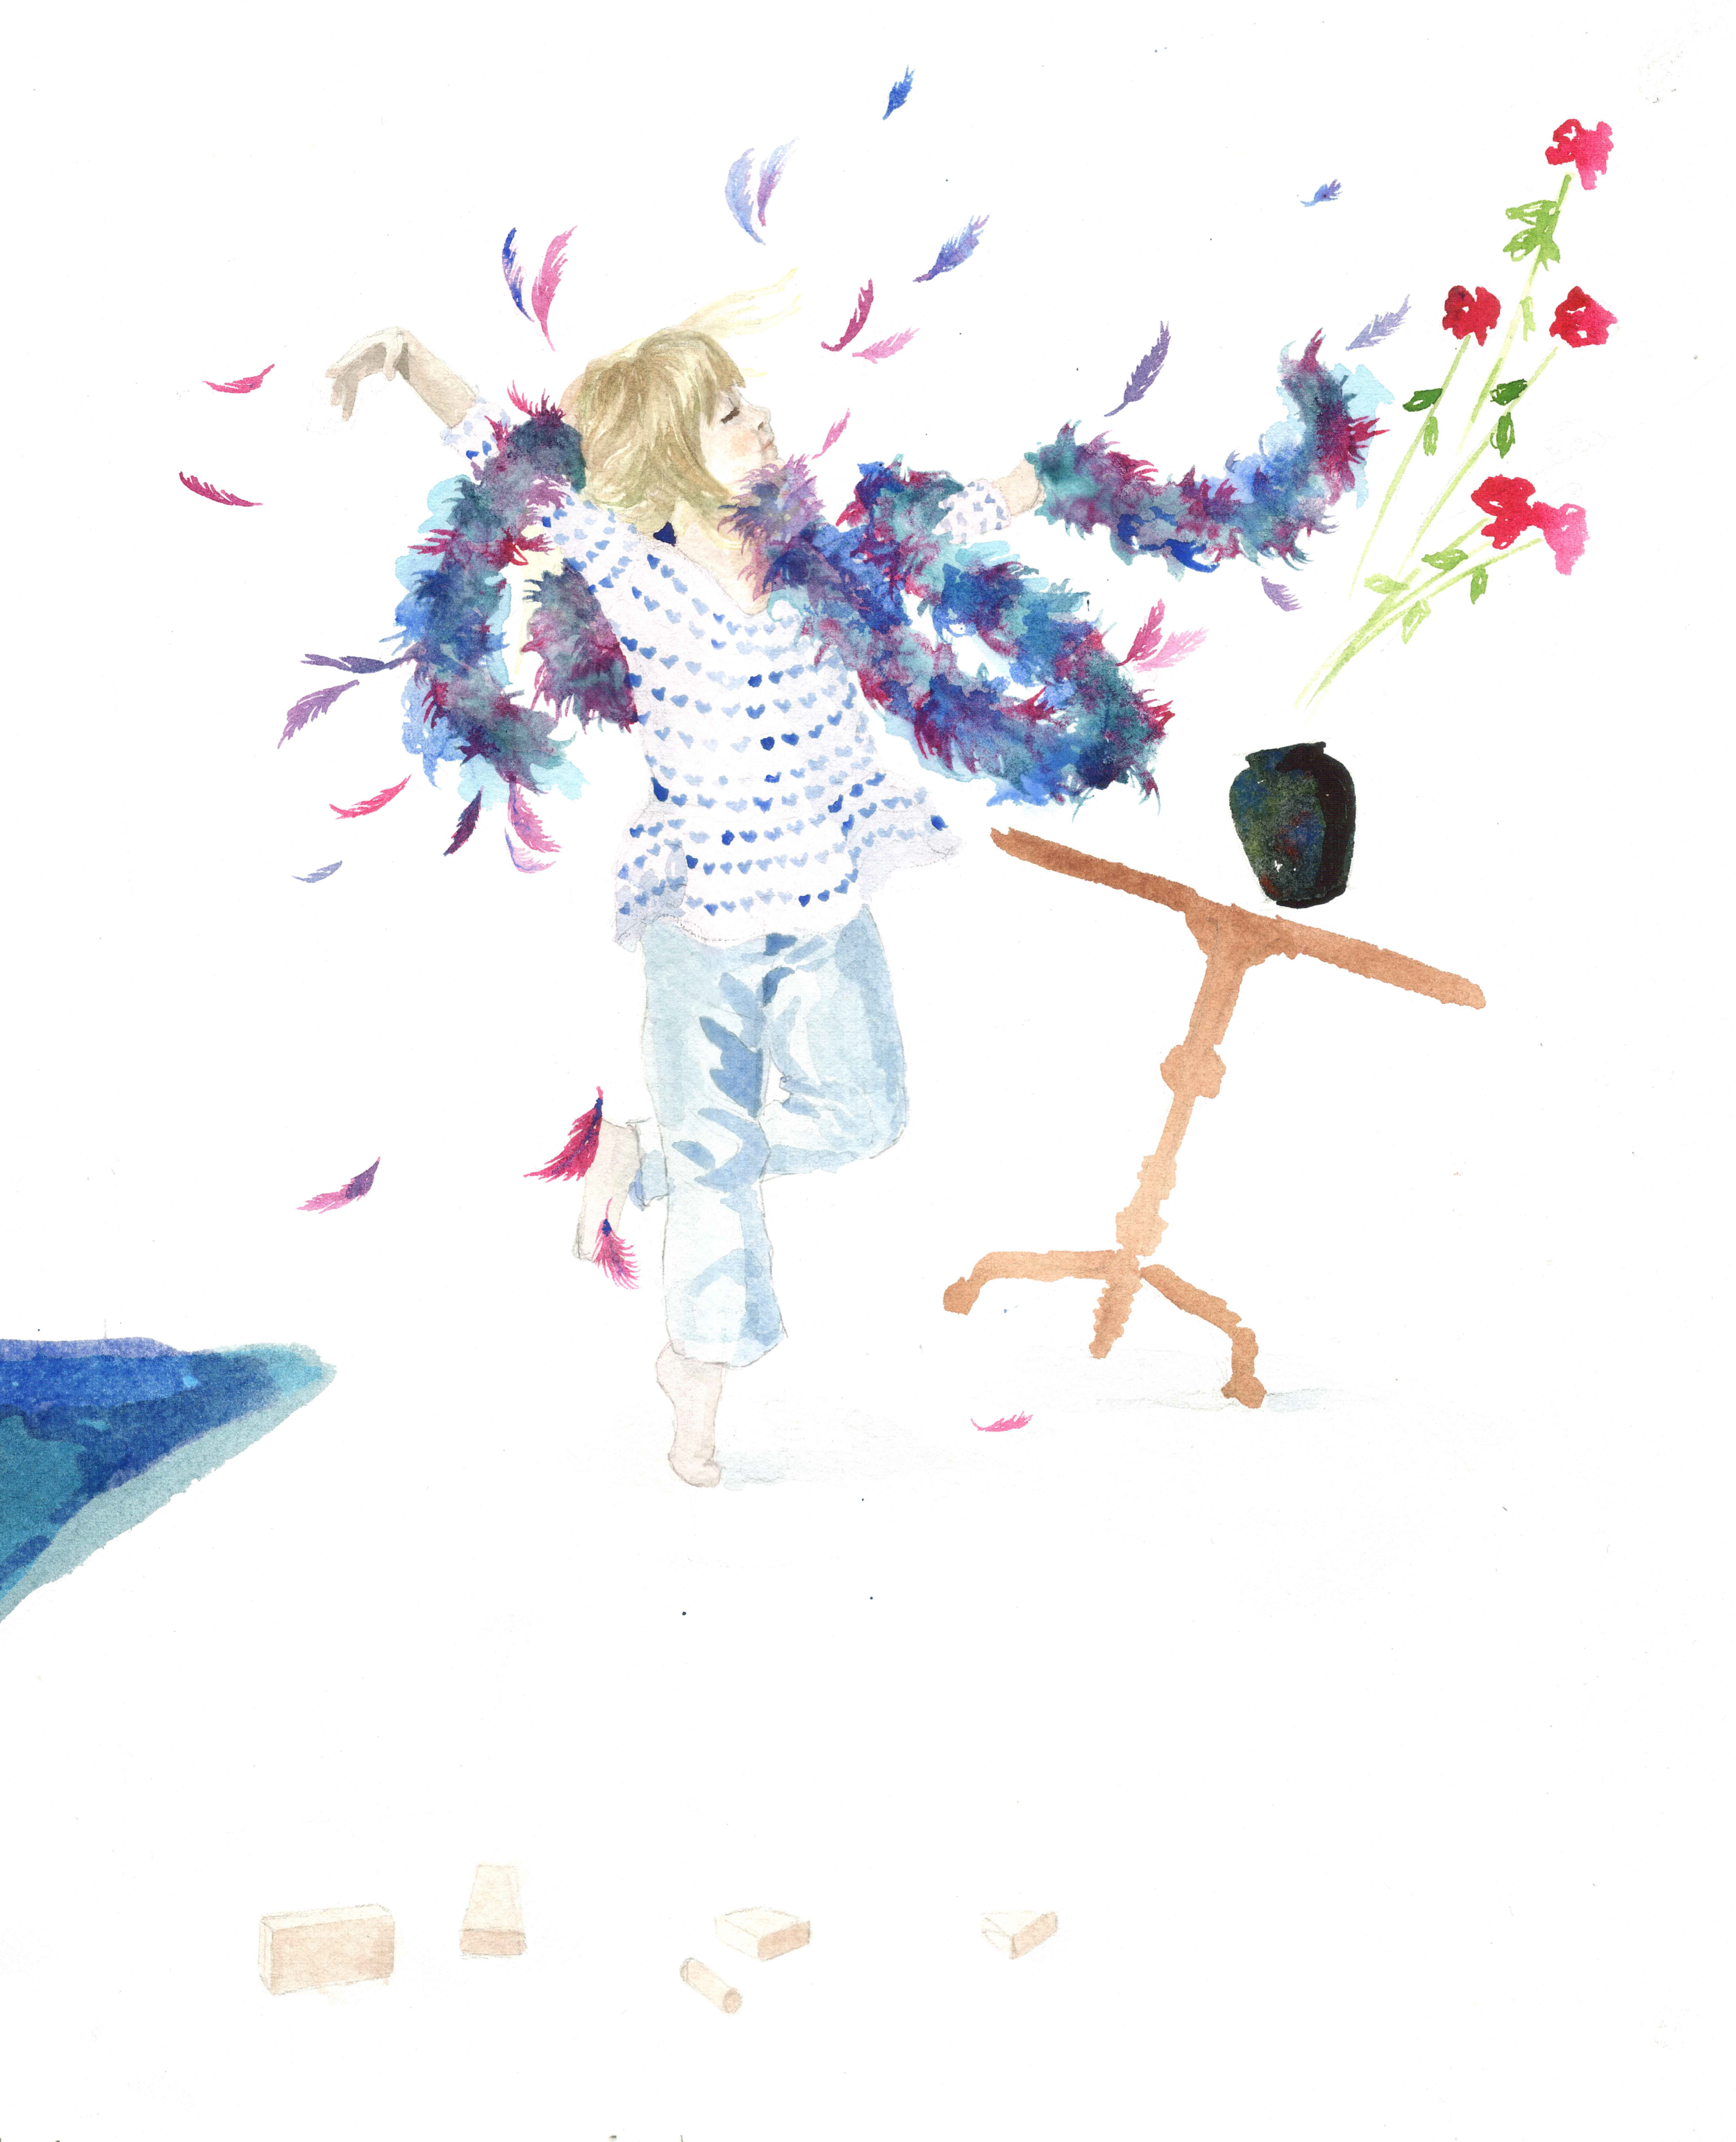 """Illustration for the book, """"I Like You, Samantha Sarah Marie."""" Watercolor on paper."""